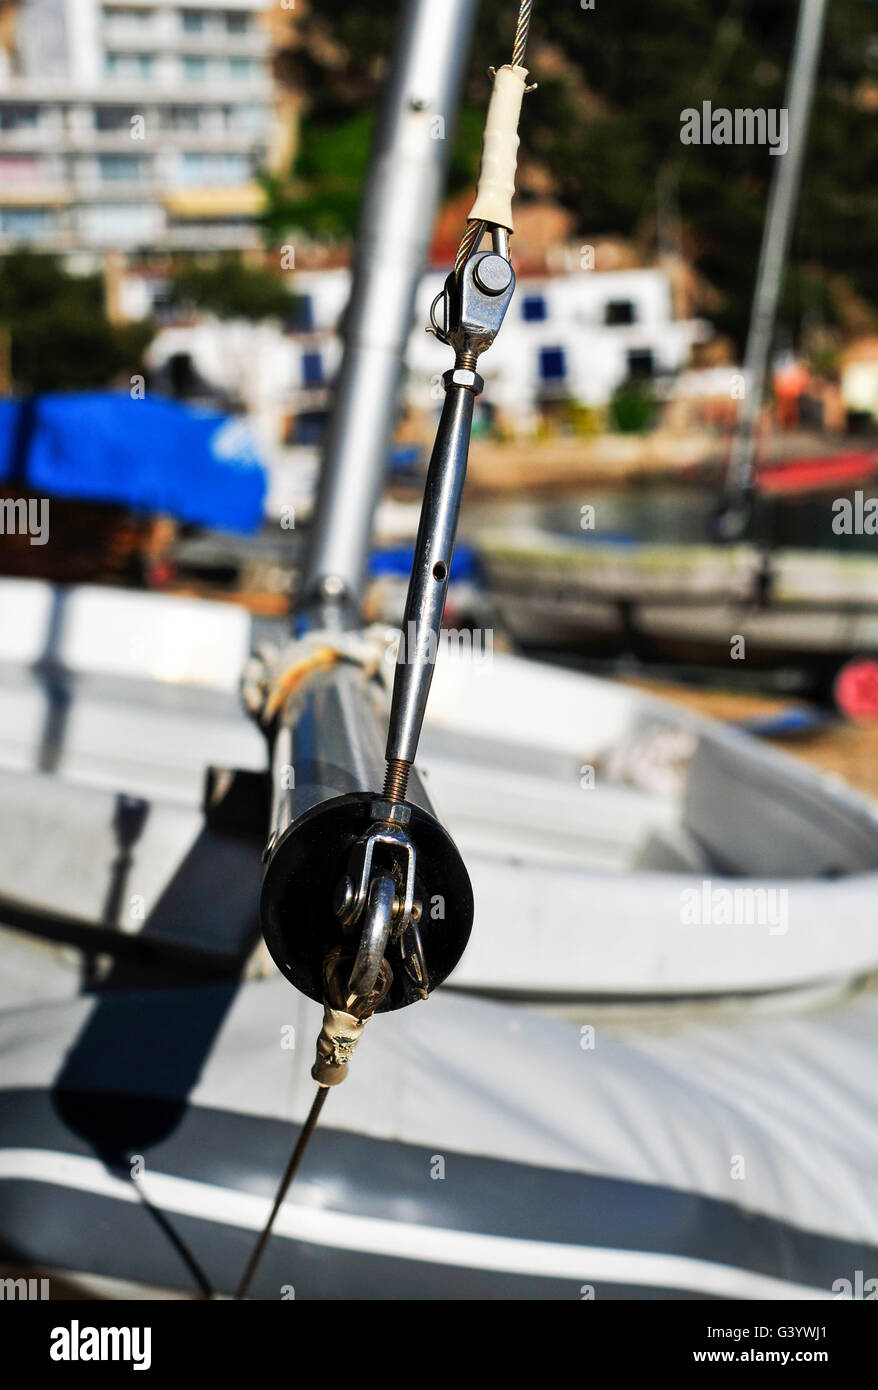 closeup of some sailing boats stranded in a beach in a Mediterranean village - Stock Image